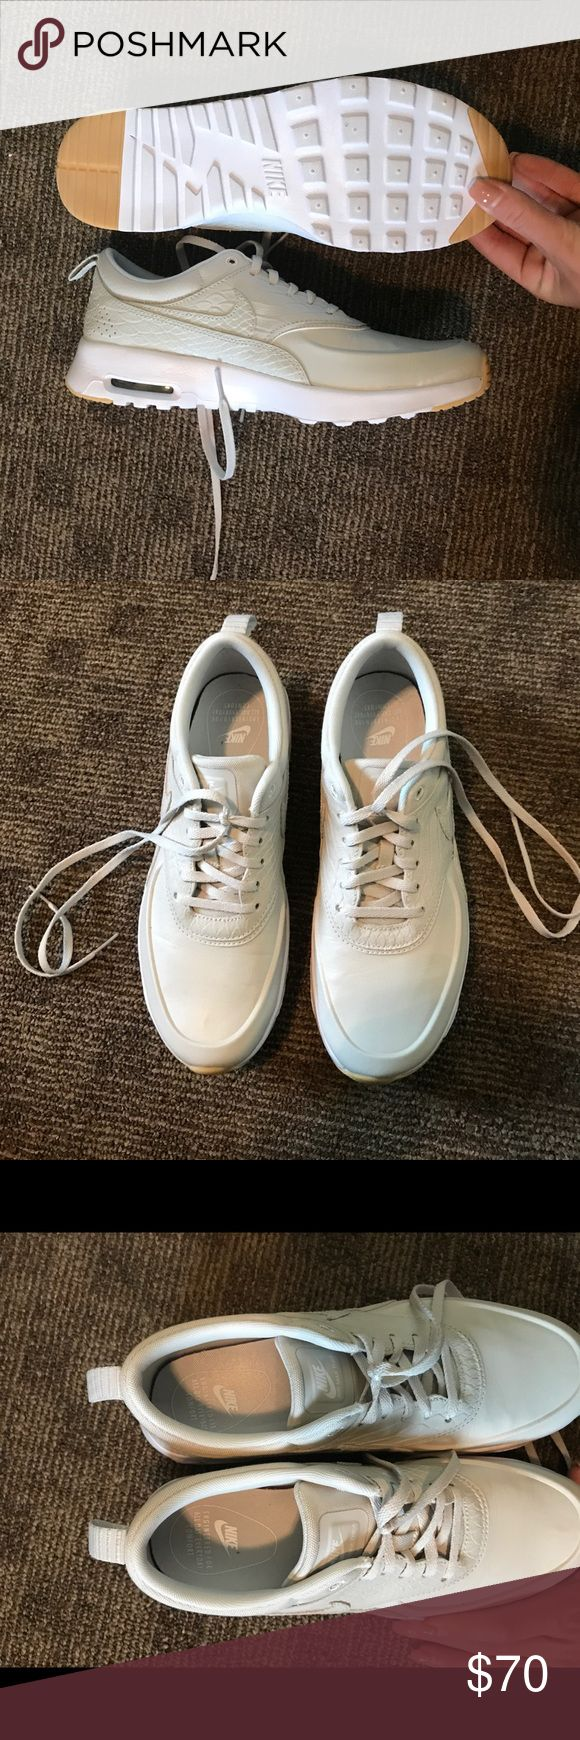 Nike shoes Women's size 8.5, they run small and on website it says to order 1/2 size up, these have been worn for like an hour, perfect condition, basically brand new, I bought with a gift card and that is why I am not returning. Nike Shoes Athletic Shoes